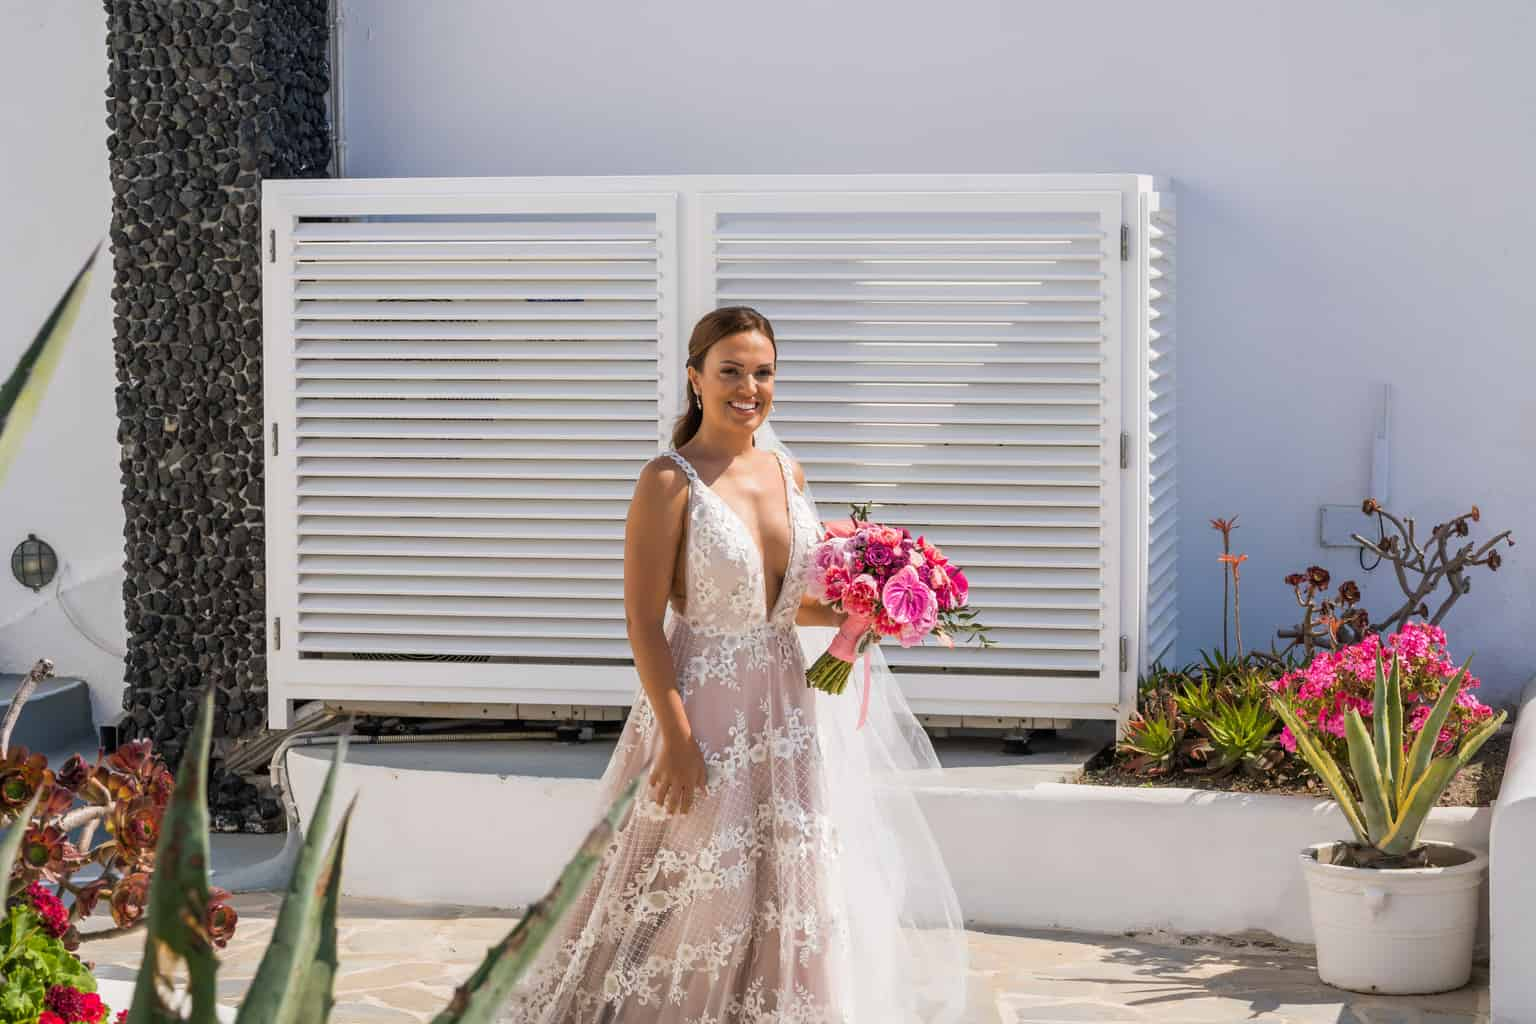 Destination-wedding-grecia-elopment-wedding-fotografia-life-click-studioLFC66of185